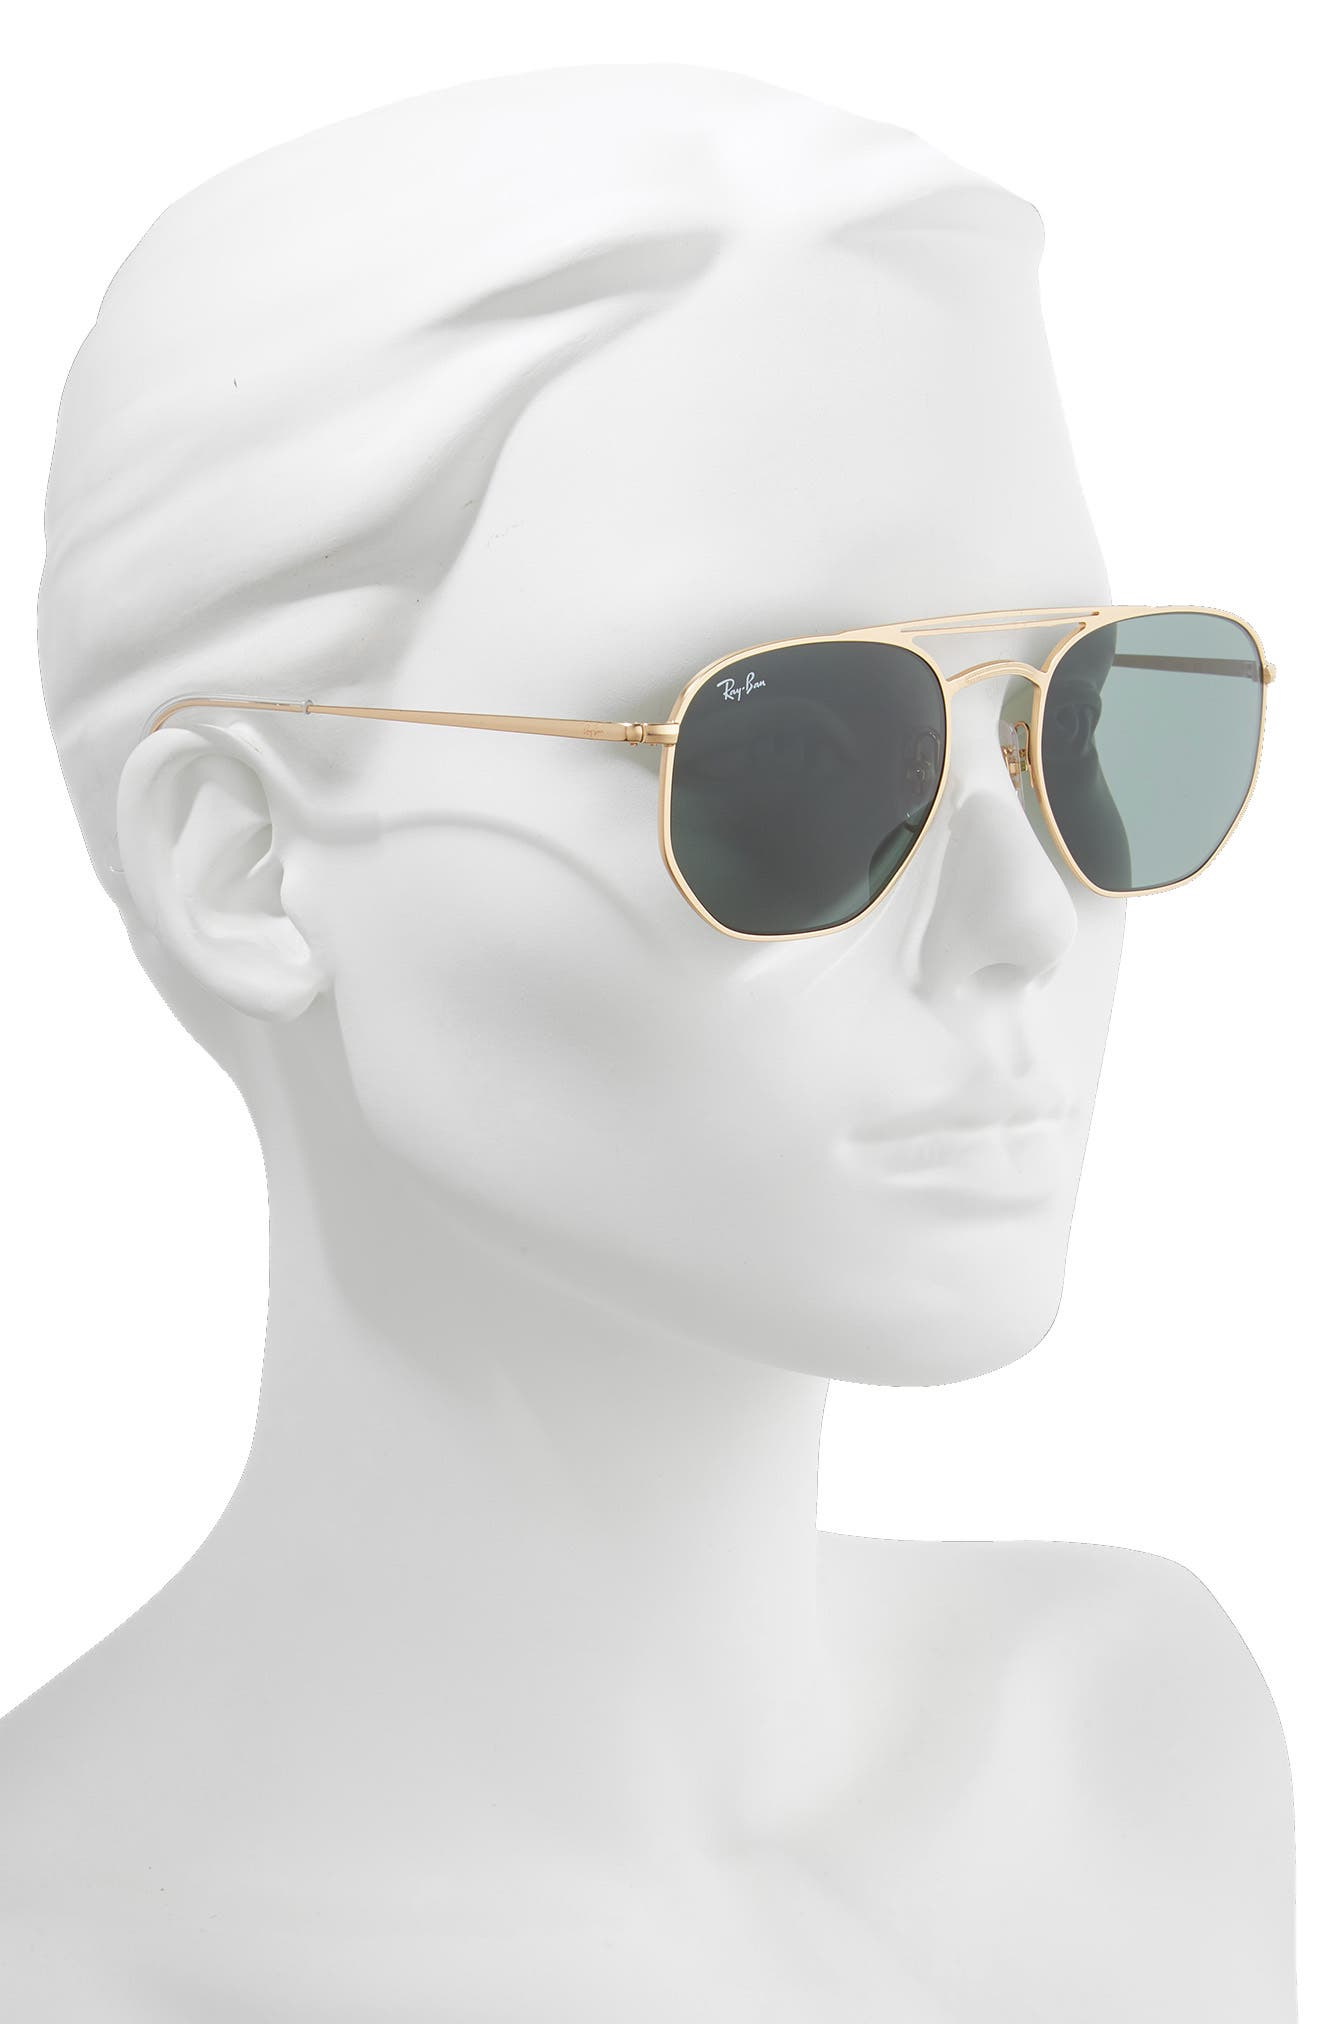 54mm Aviator Sunglasses,                             Alternate thumbnail 2, color,                             GOLD/ GREEN SOLID